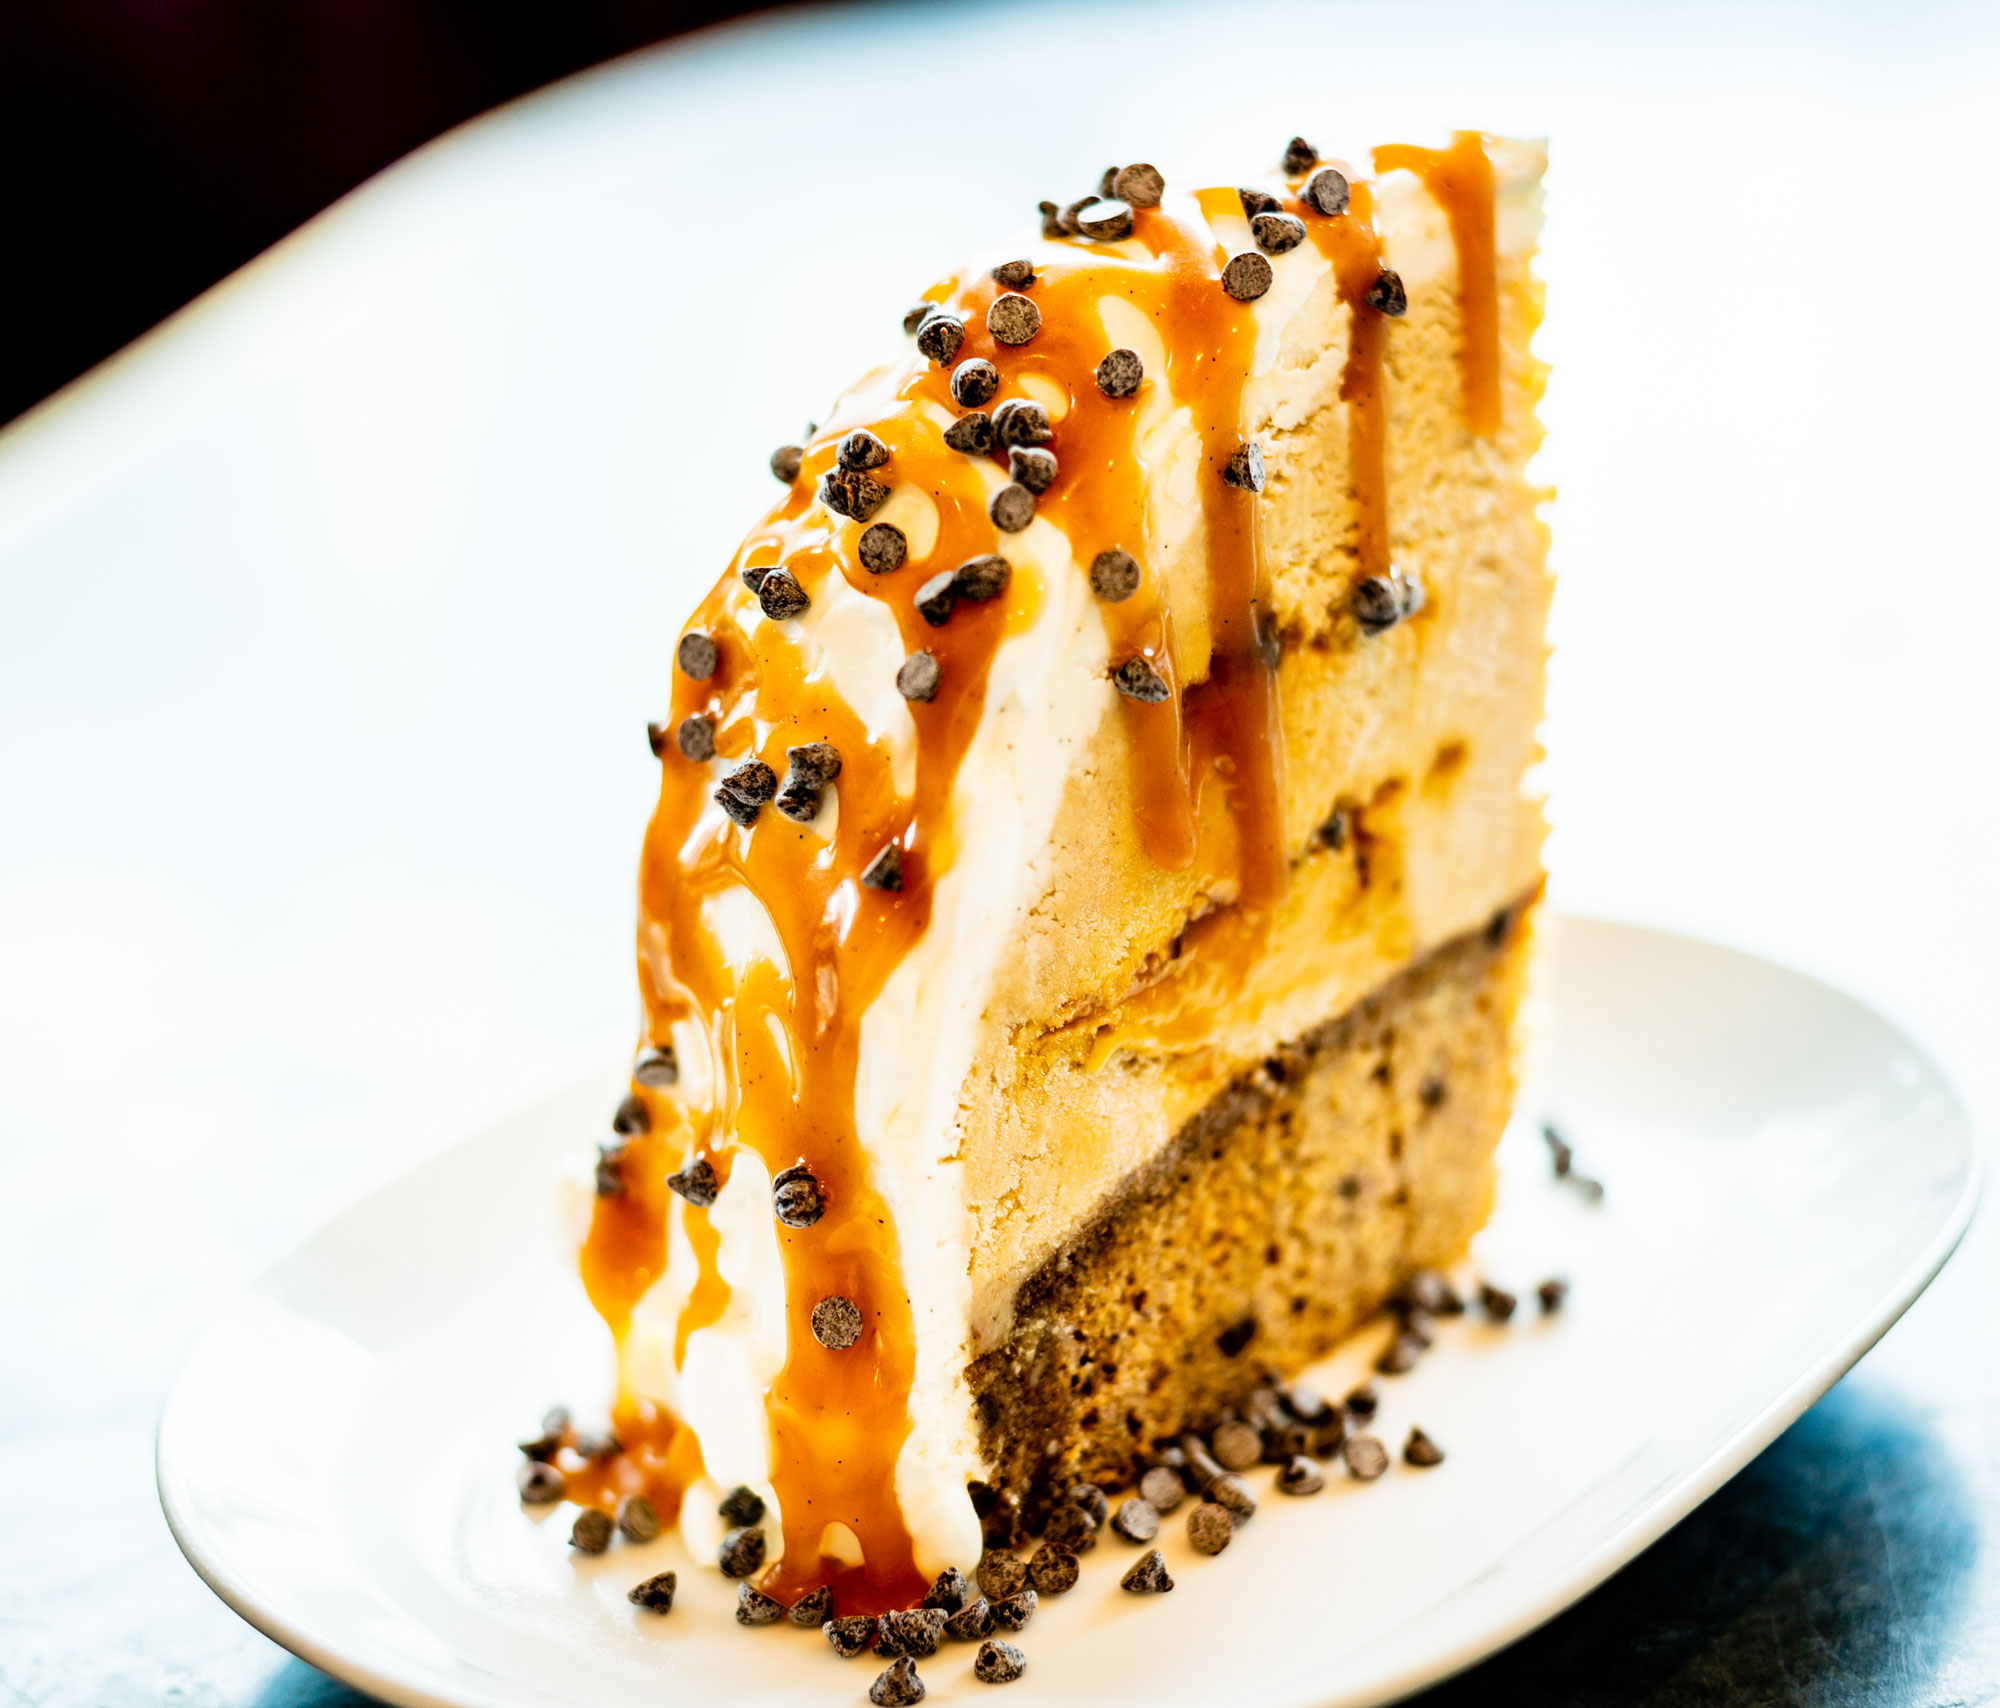 Sticky toffee banana ice cream cake by Jen Yee